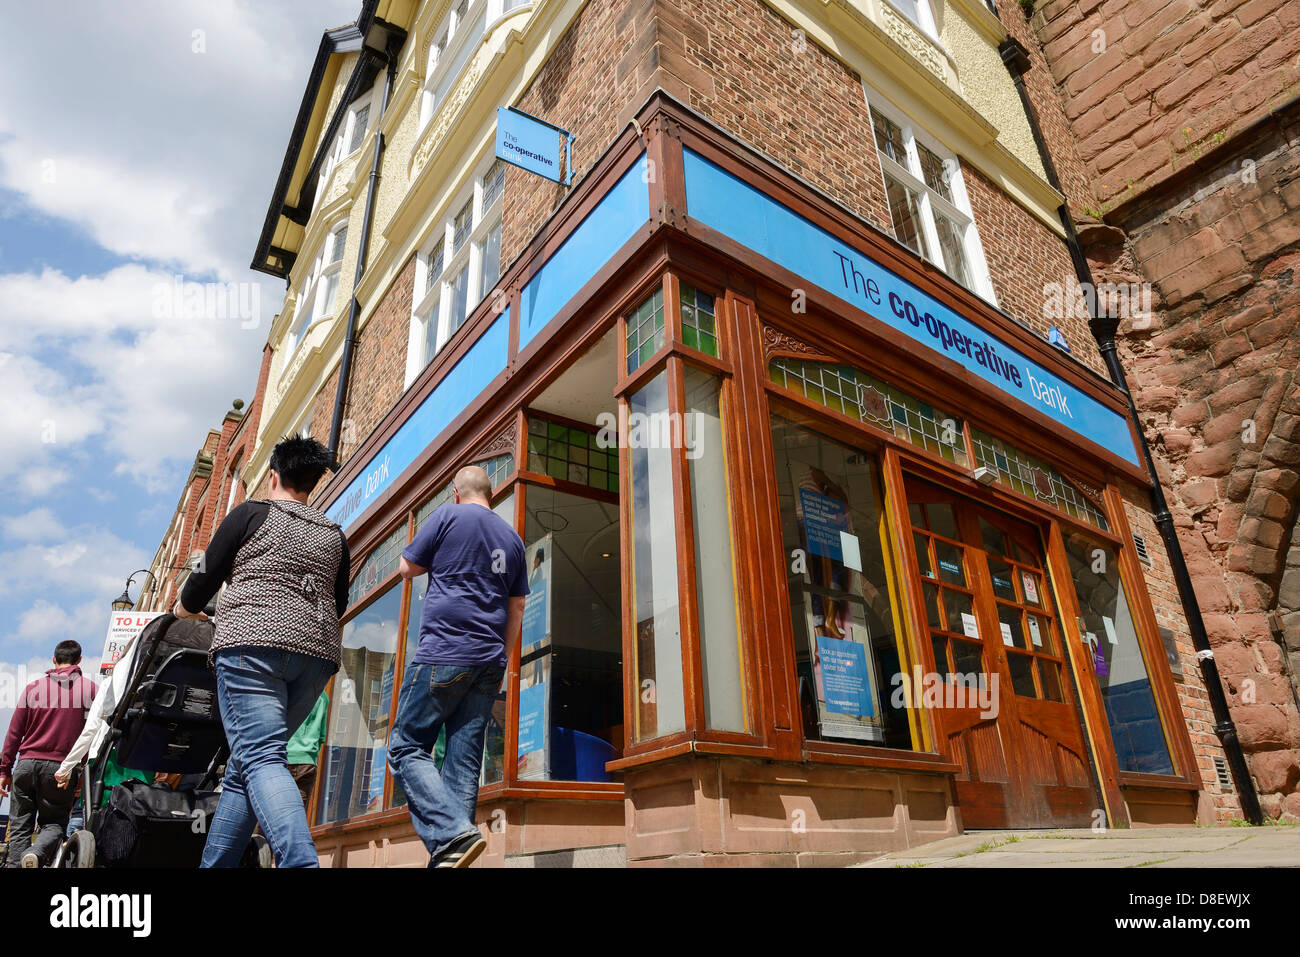 Co-Operative bank branch in Chester - Stock Image